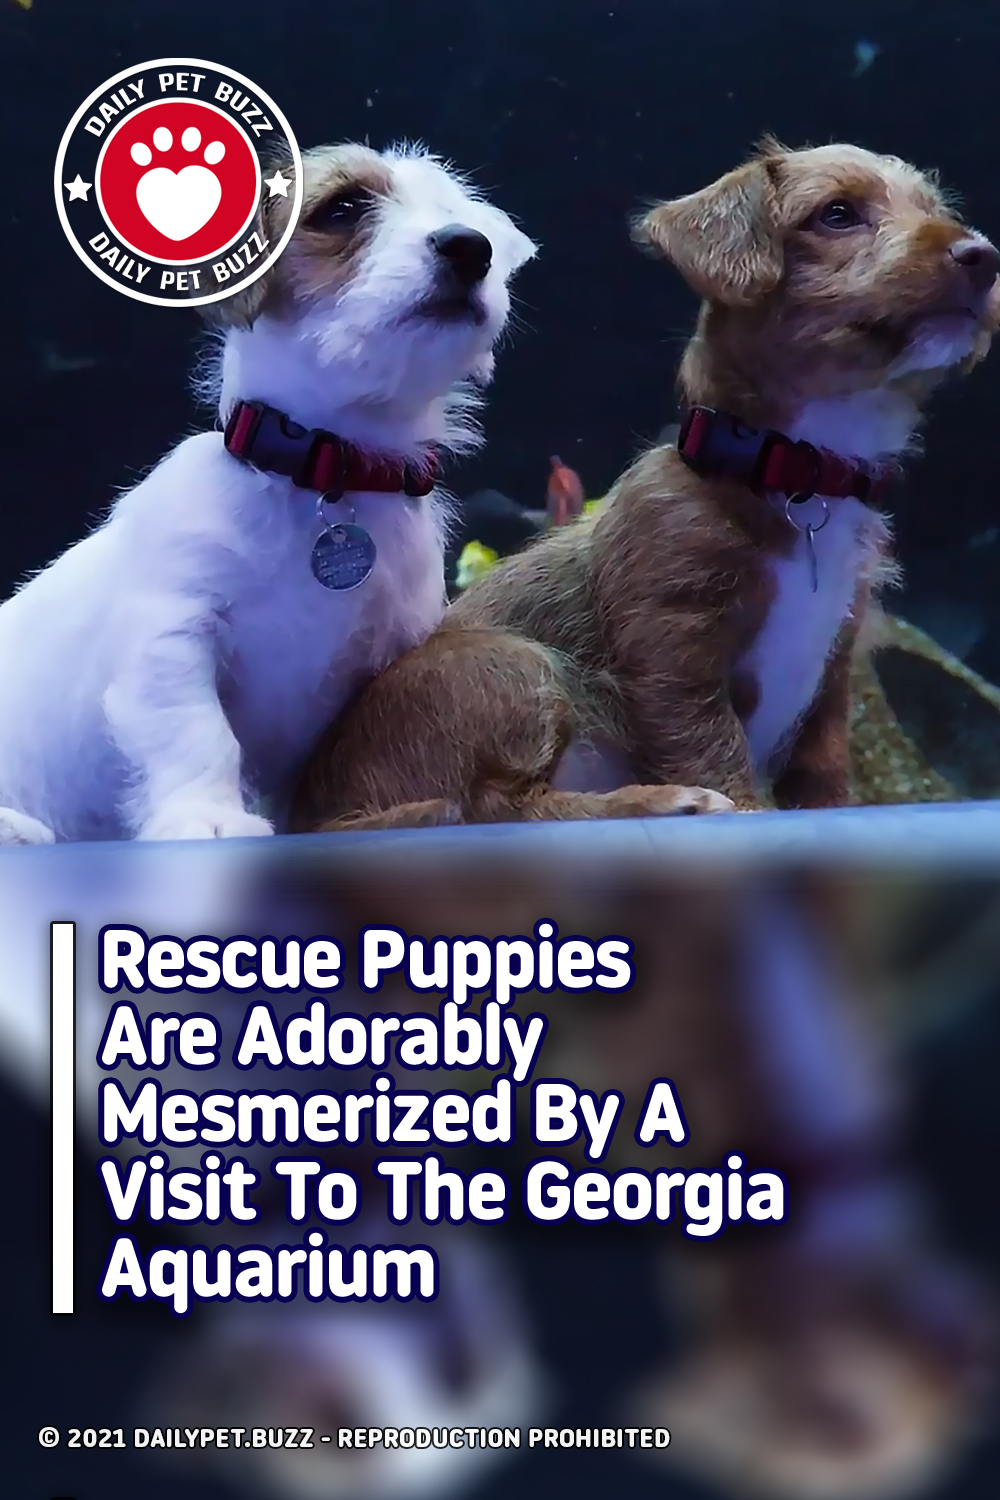 Rescue Puppies Are Adorably Mesmerized By A Visit To The Georgia Aquarium